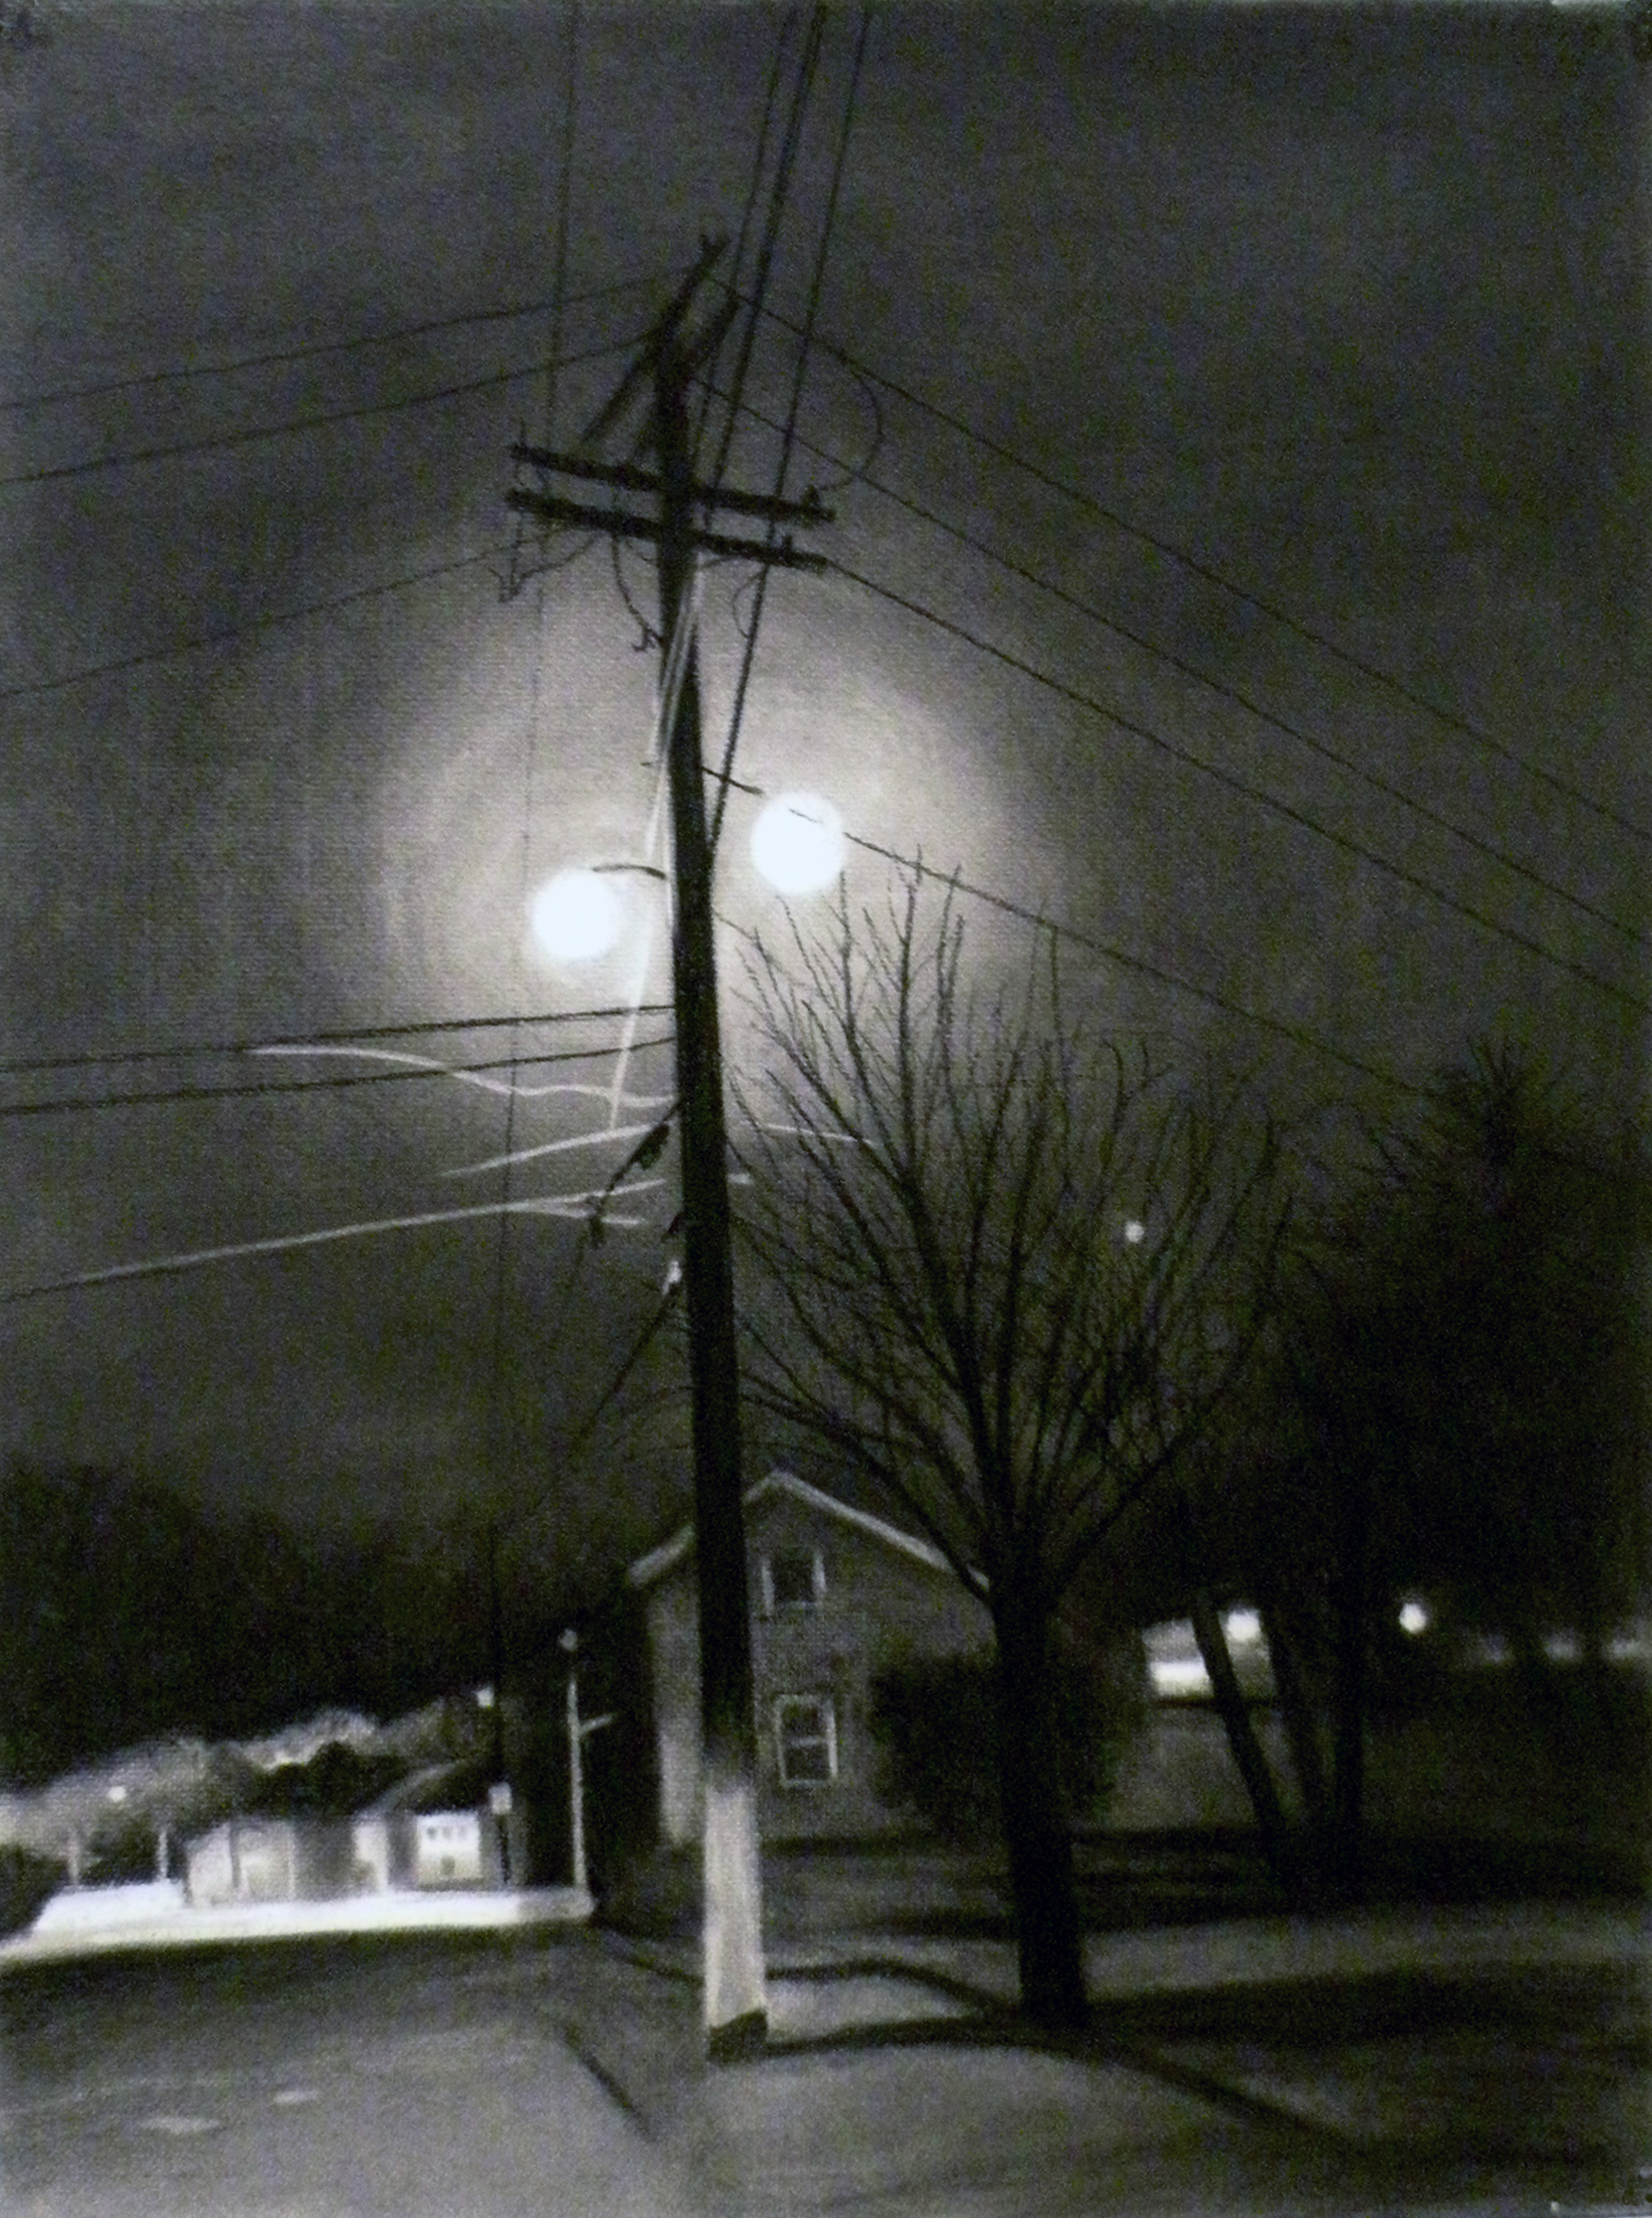 "TOWN WITHOUT PITY, 2018, Charcoal on paper, 24"" x 18"" unframed, 31"" x 25"" framed"